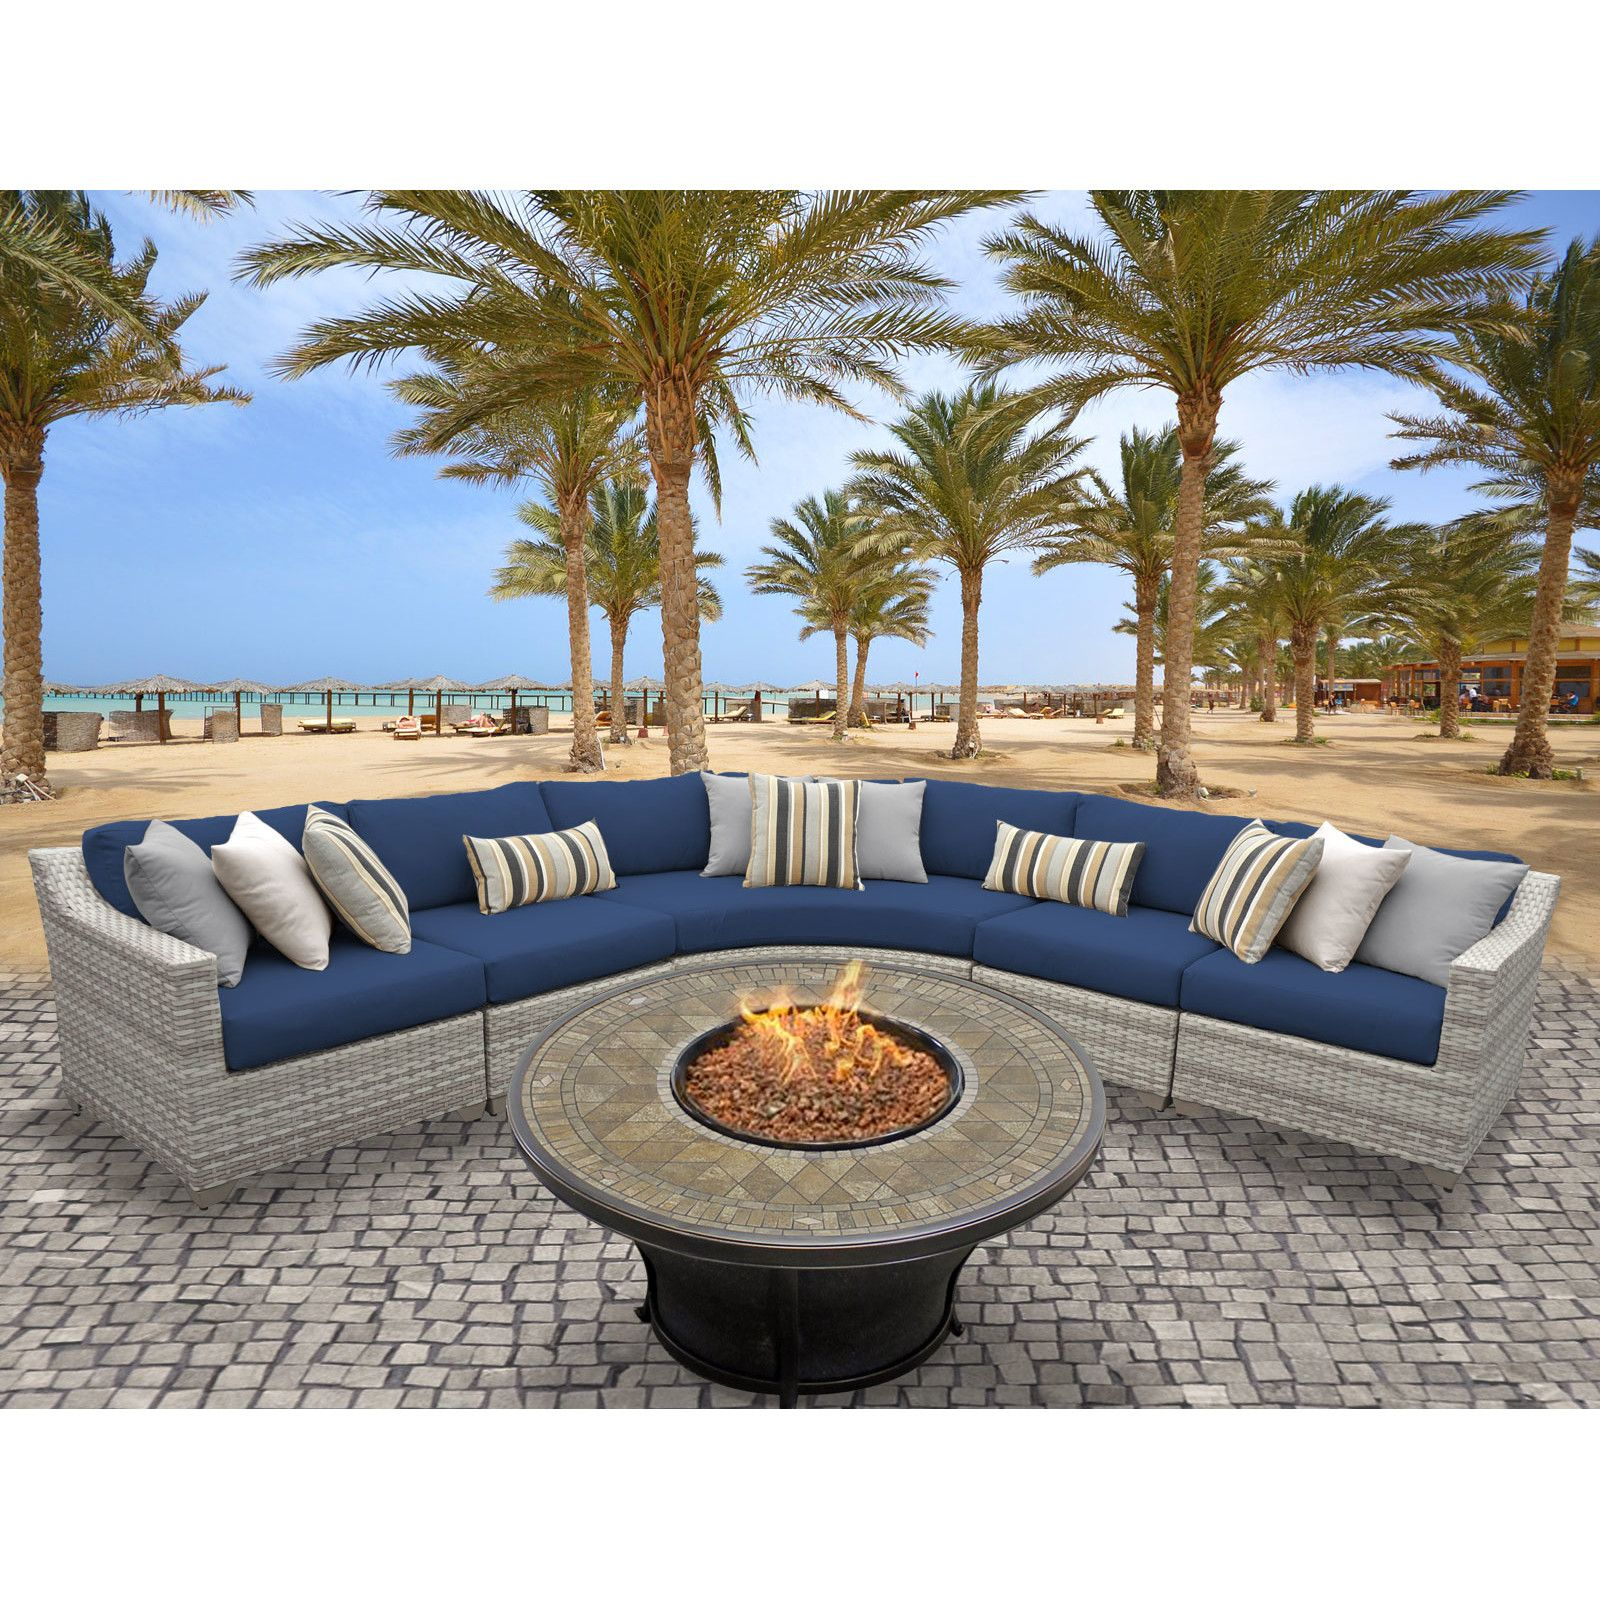 Customer Image Zoomed (With images) | Outdoor wicker patio ...